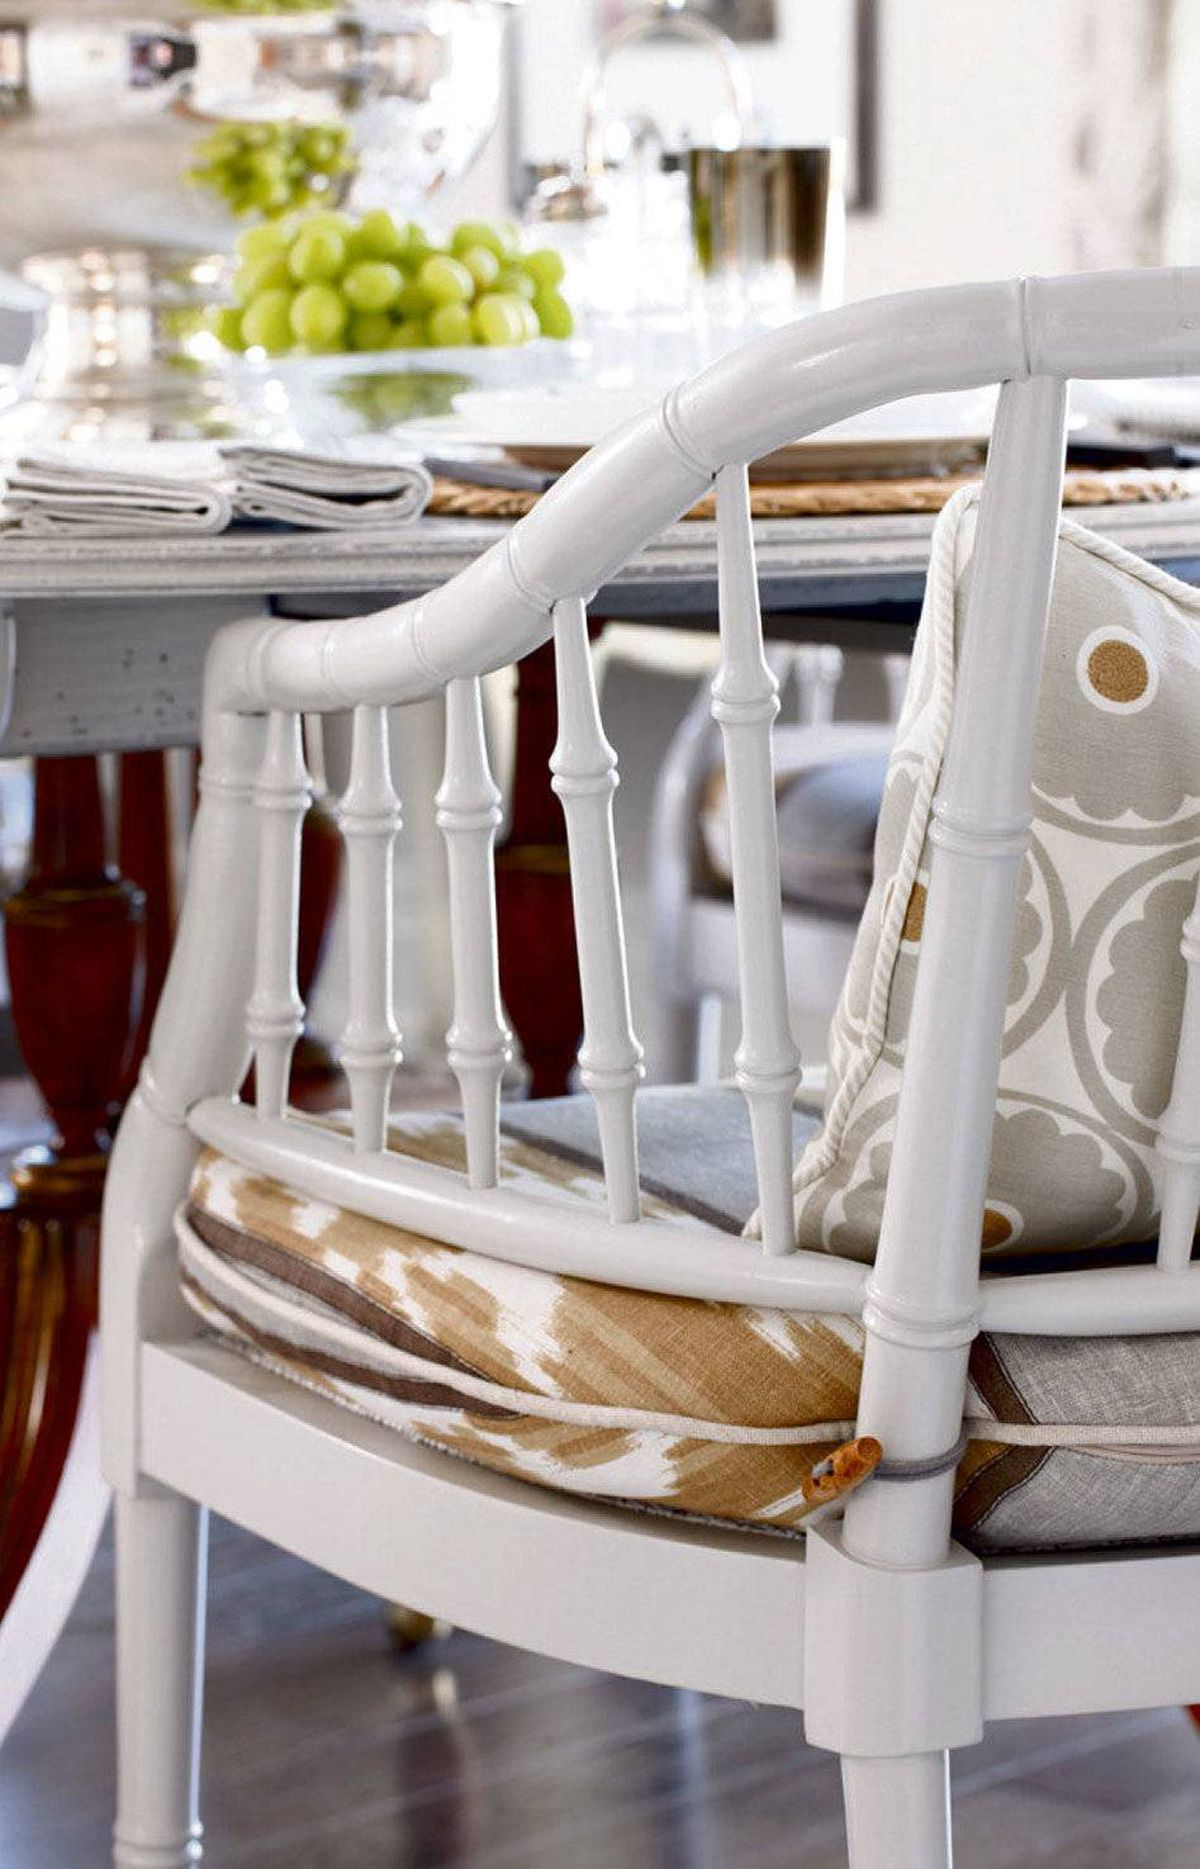 USE FABRIC Chairs are far more welcoming when dressed with seat and back cushions. As long as you pre-wash your fabrics to avoid shrinkage and use removable covers with zipper closures, the sins of sticky fingers and messy eaters can be erased with a quick spin cycle.